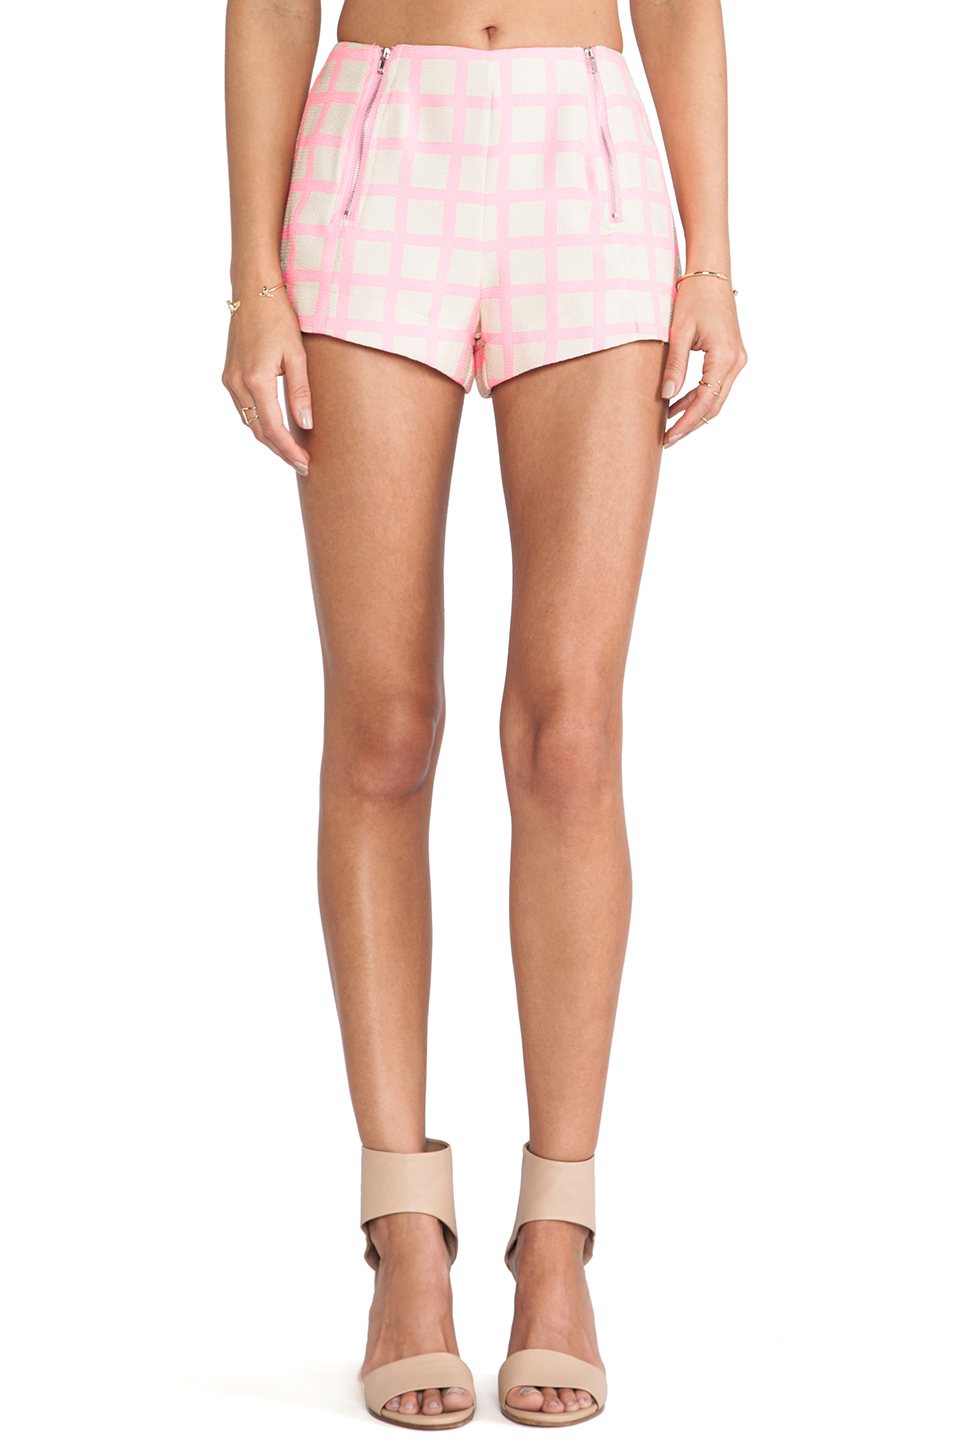 Joa shorts pink checked en neon pink